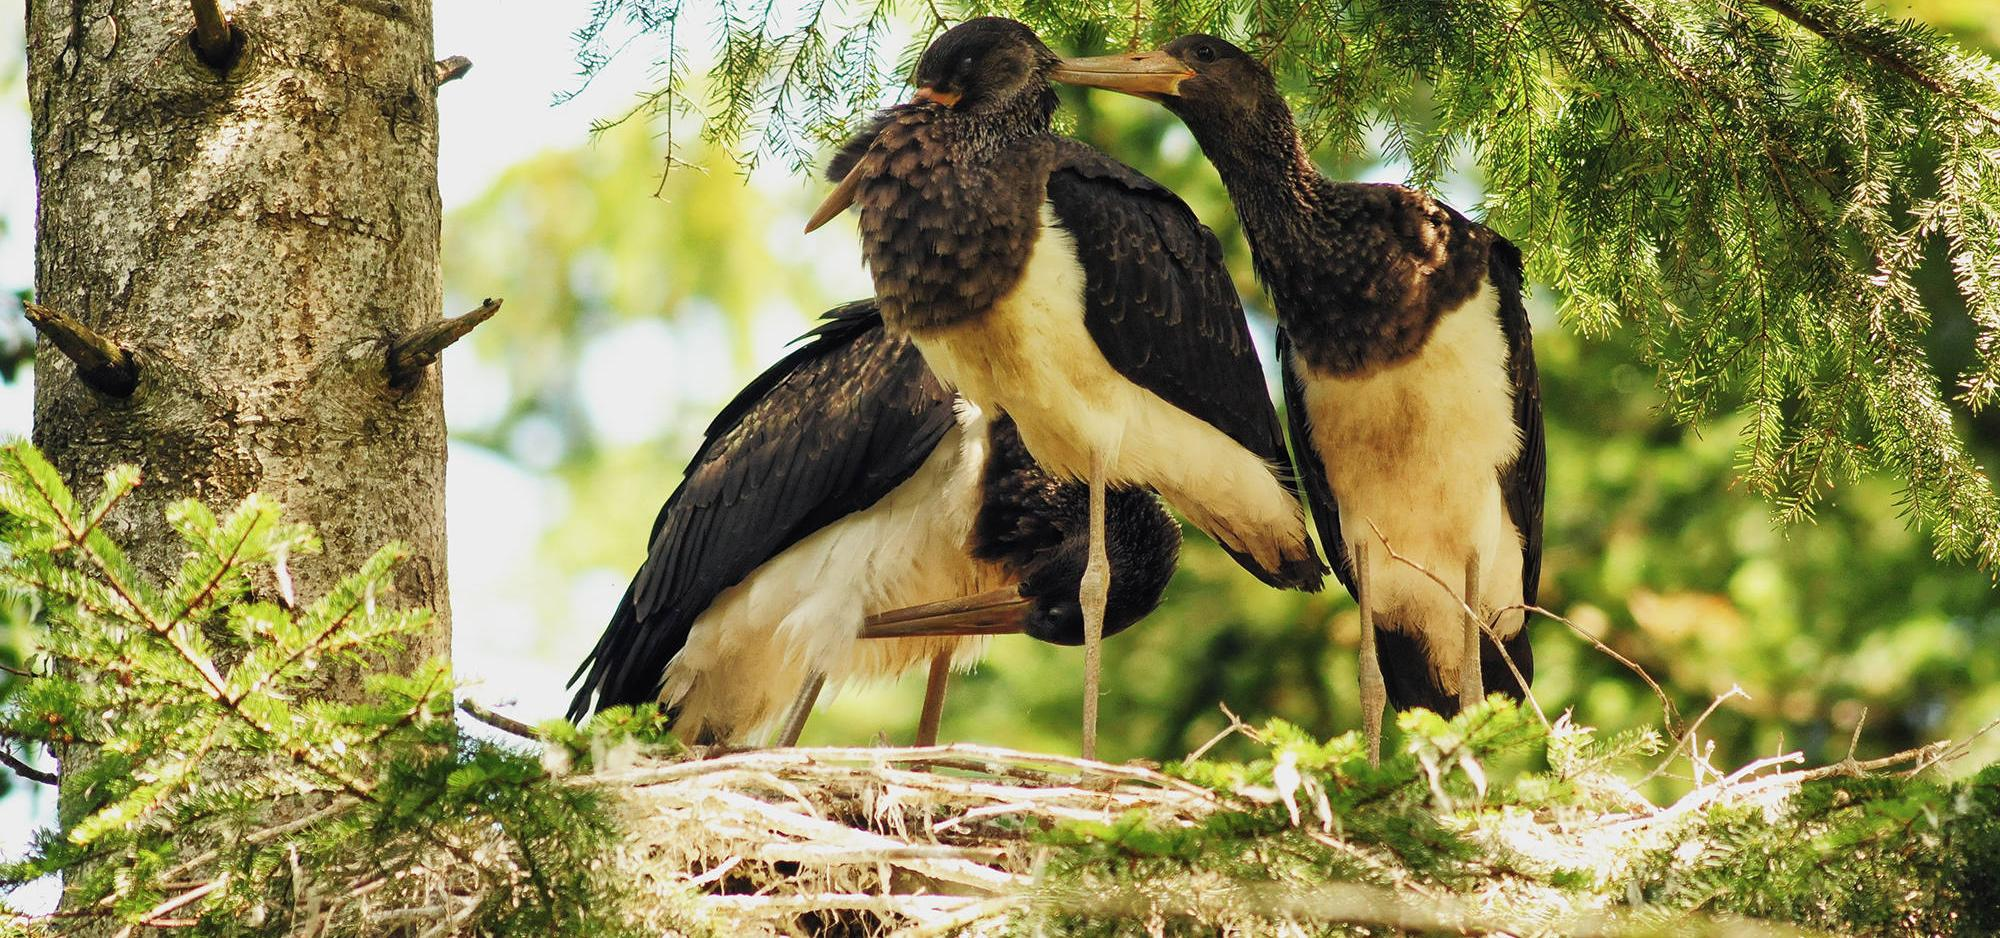 Young storks in the nest on a tree